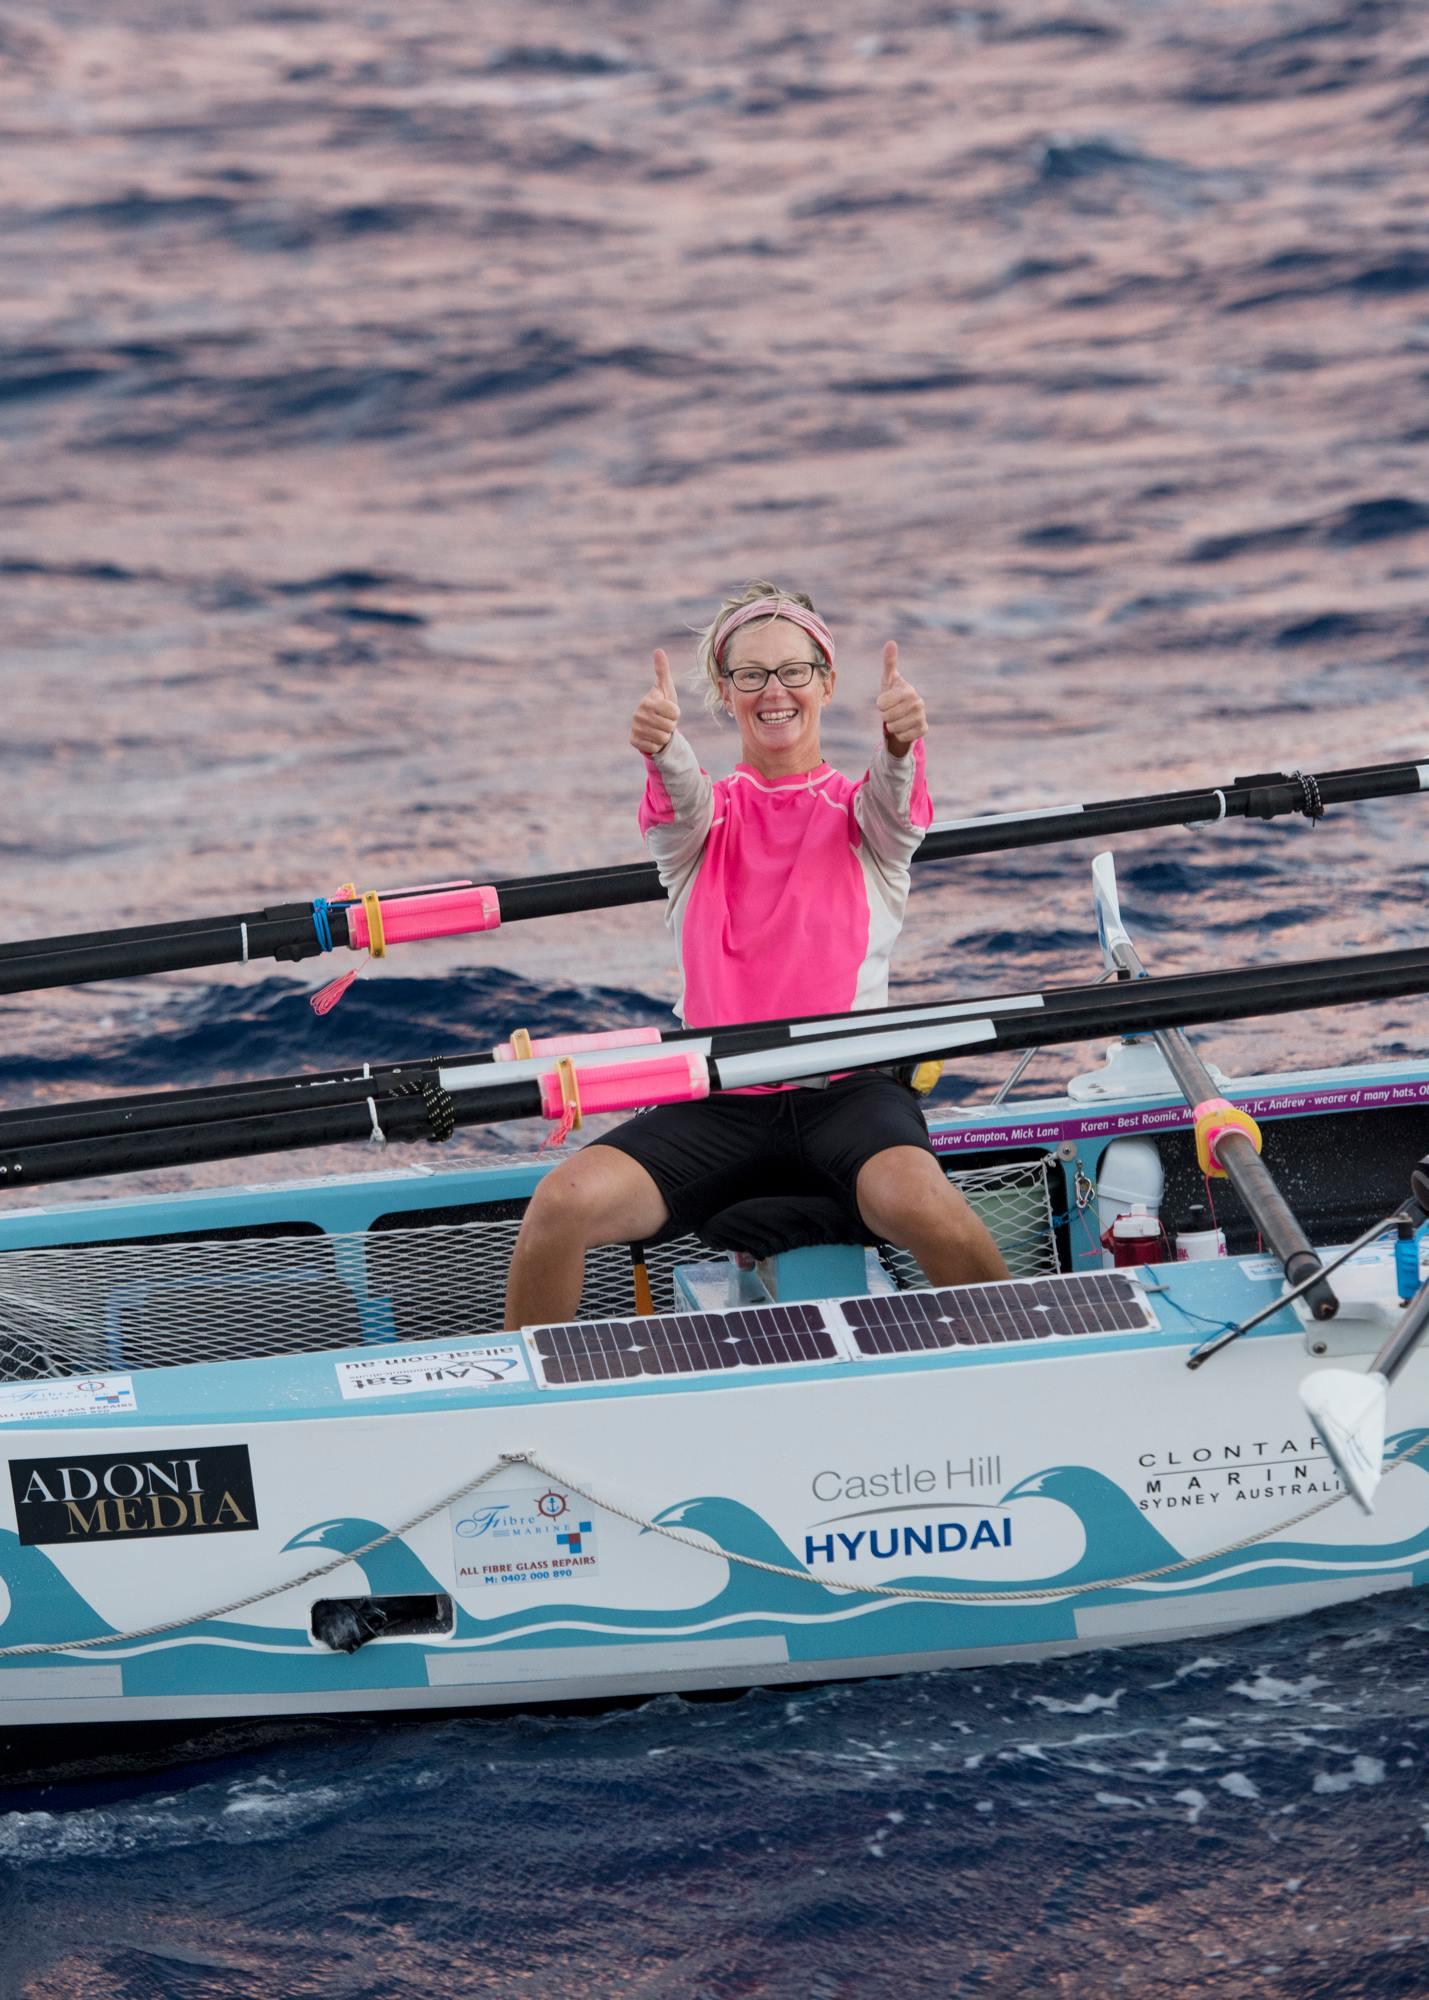 Australia's First Female to row SOLO across  Atlantic Photo Credit: Robin Skjoldborg